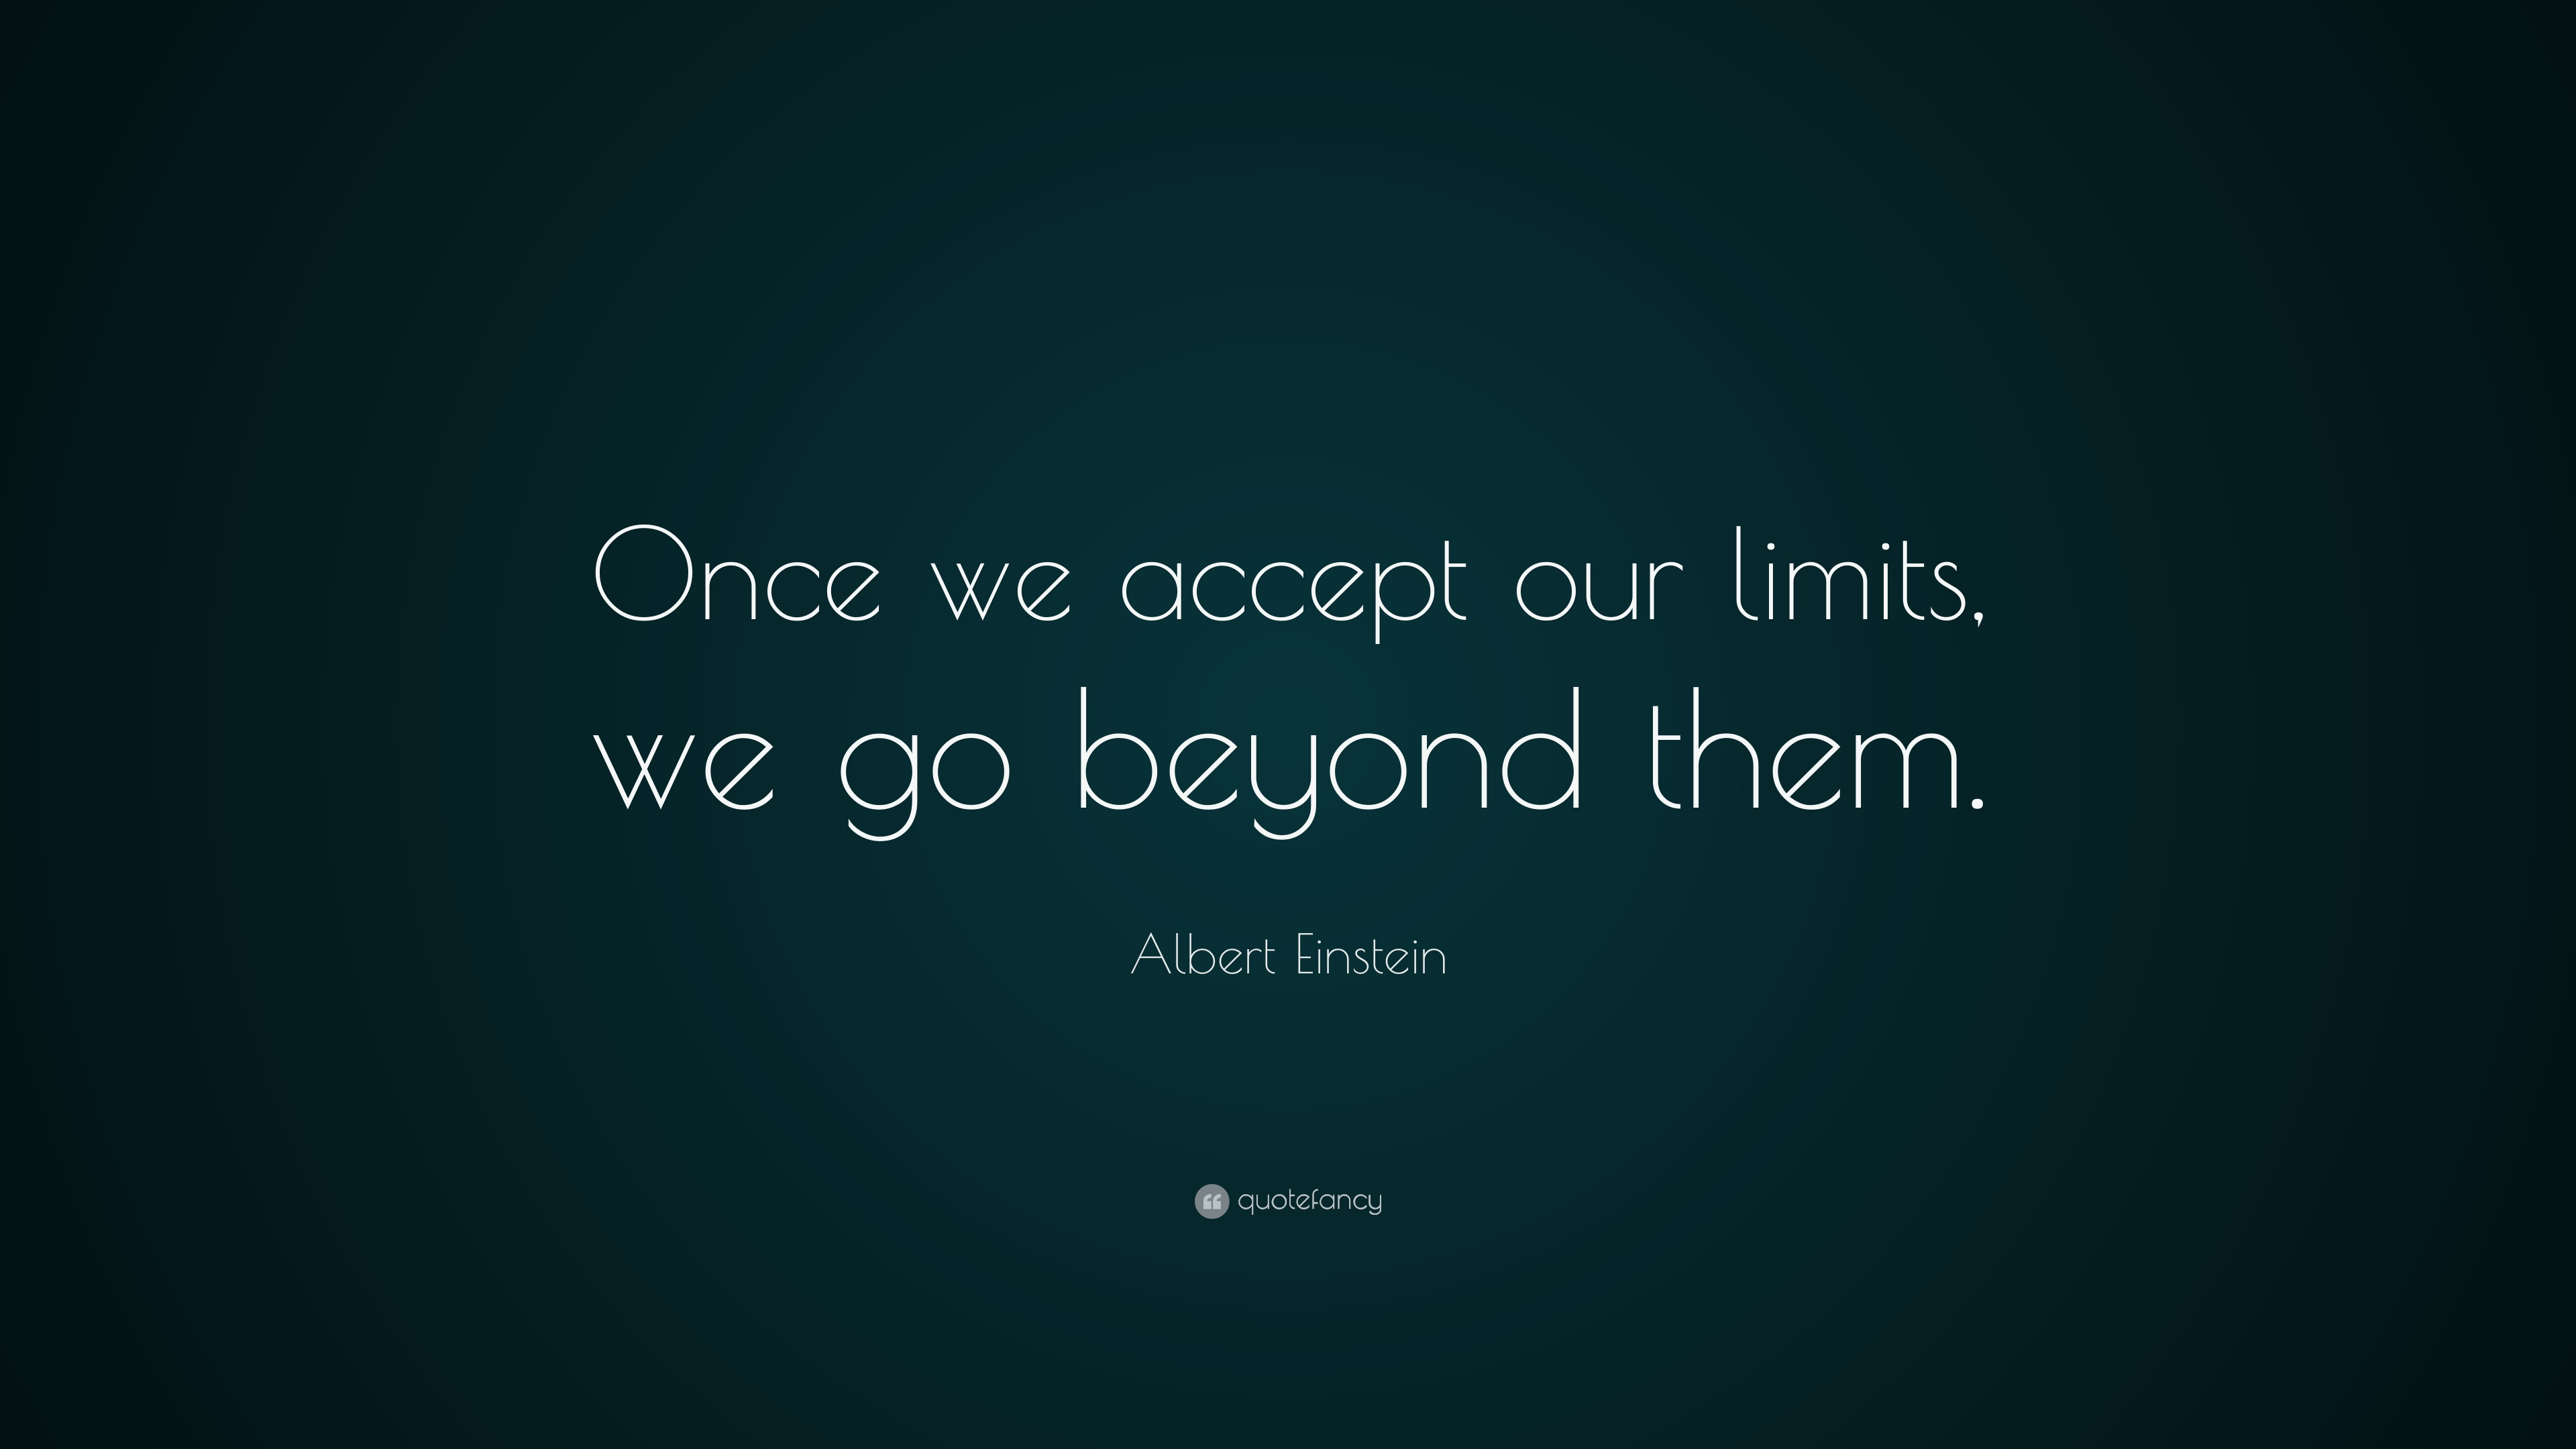 Success Quotes Hd Wallpapers 1080p Albert Einstein Quote Once We Accept Our Limits We Go